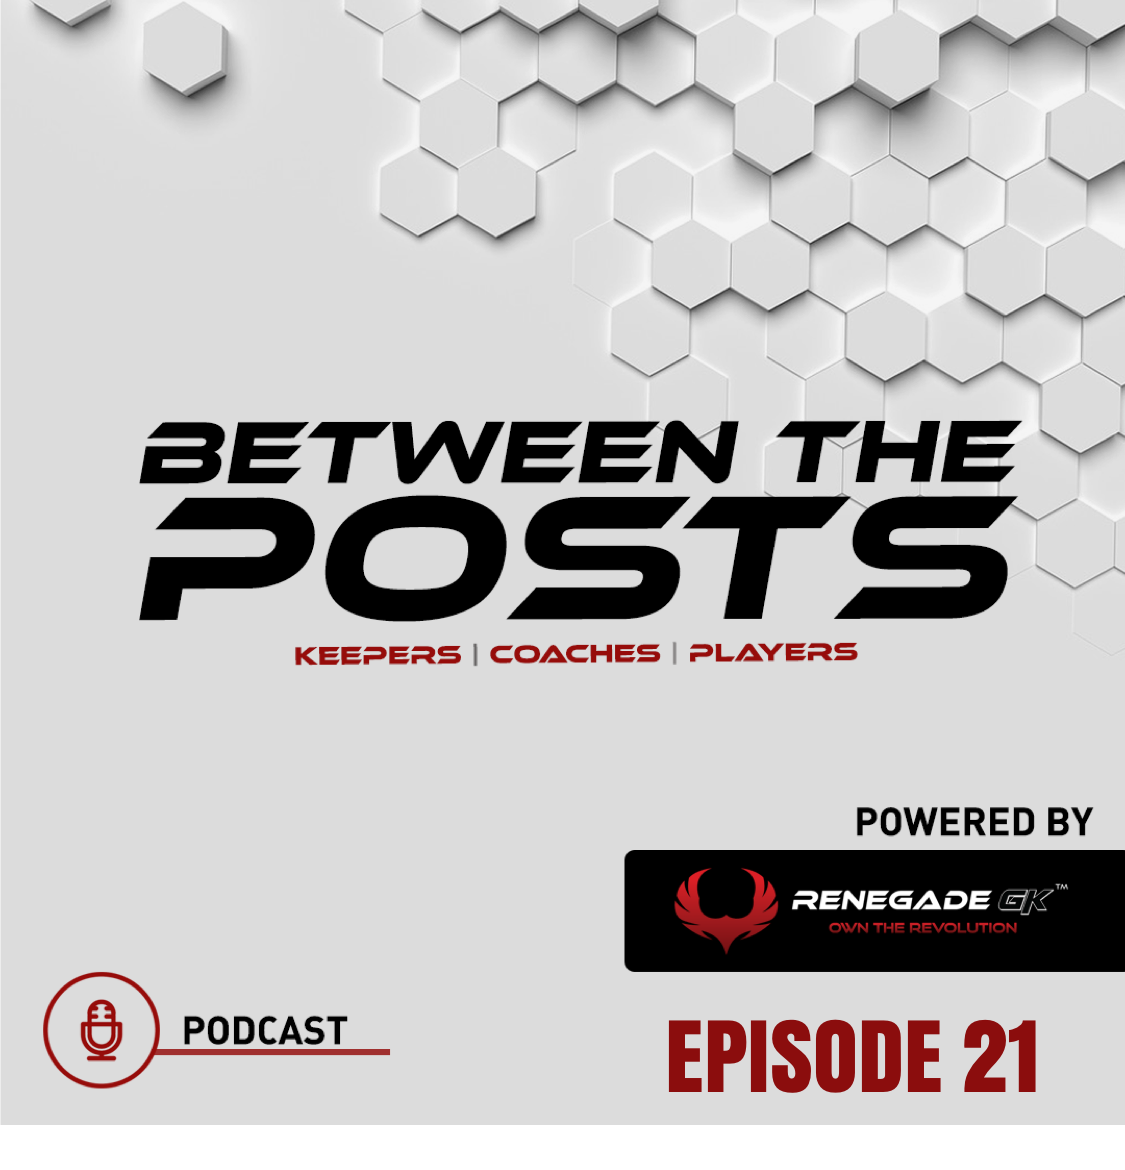 Between The Posts Ep. 21: The Small-Sided Approach With Large Results | Part 1 |